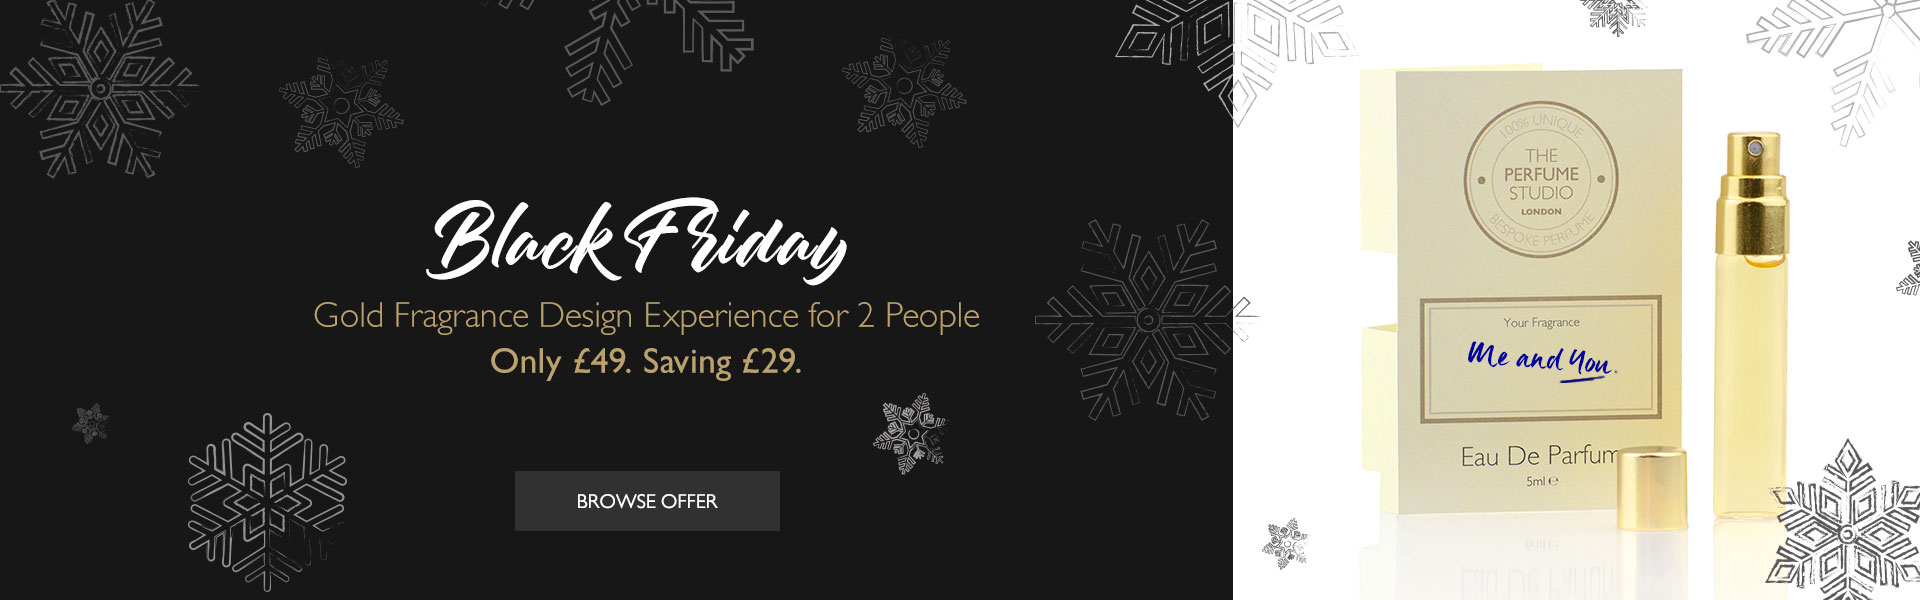 Black Friday - Fragrance Design Experience for Two People. Just £49. Save £29.